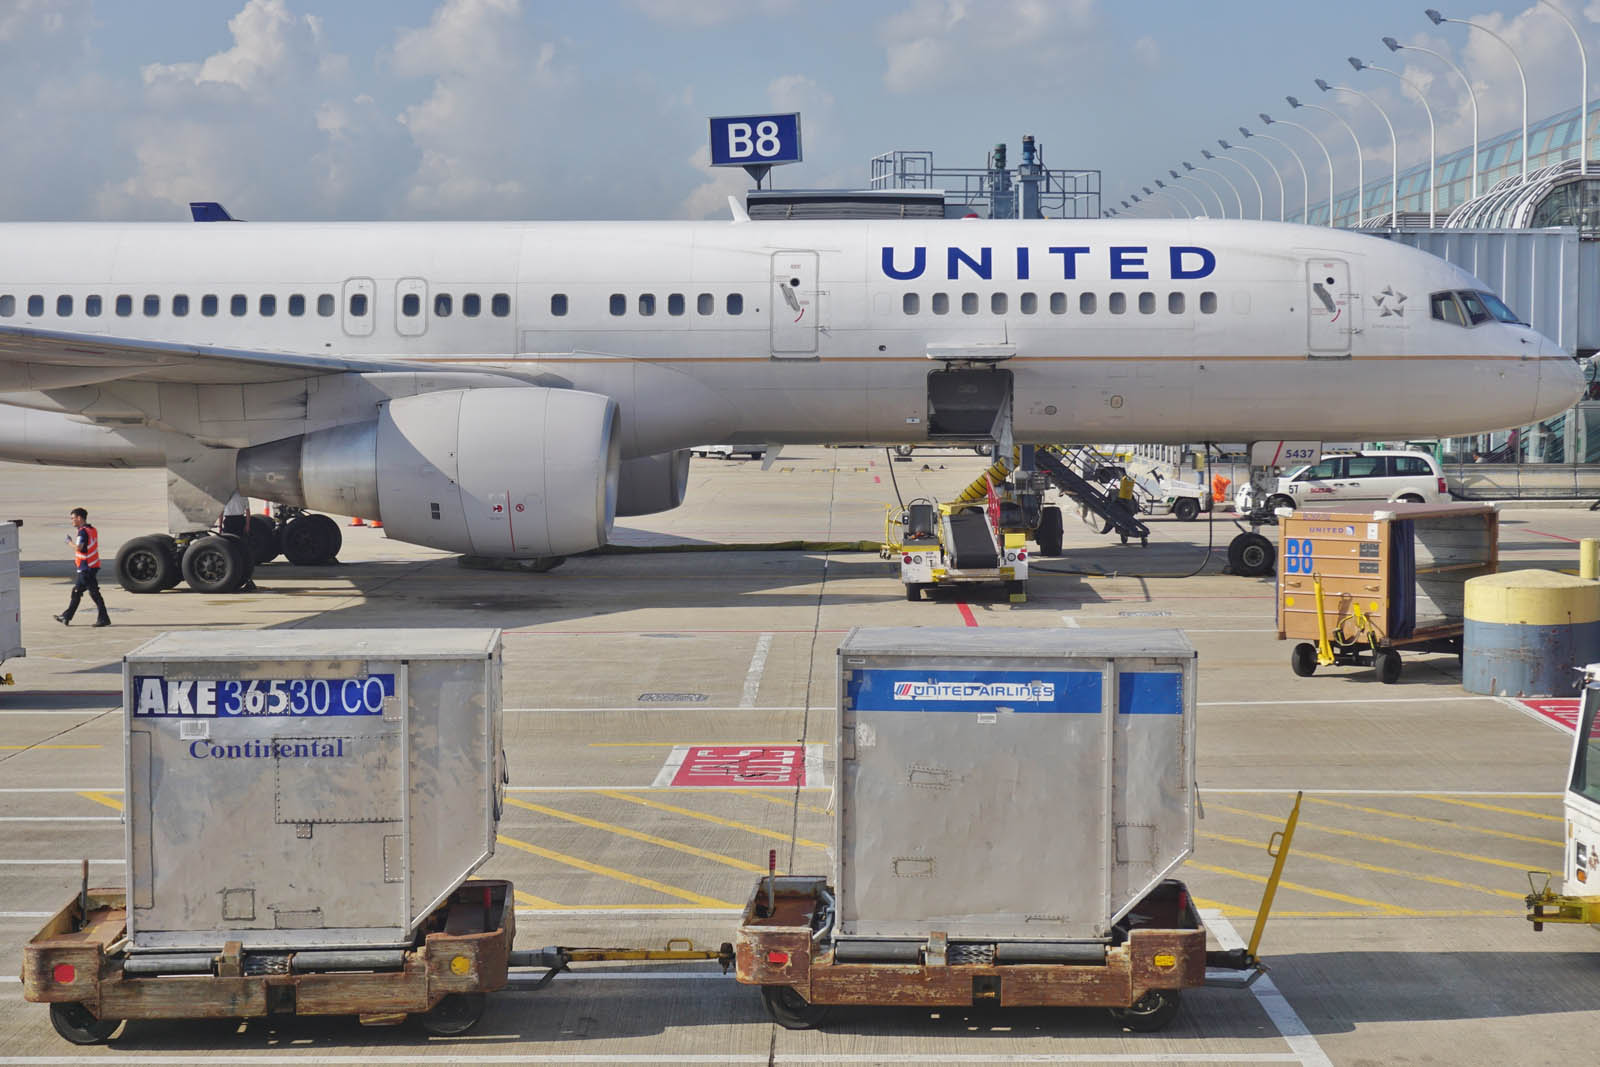 United Airlines Bike Fees are no more – another airline where bikes fly for less